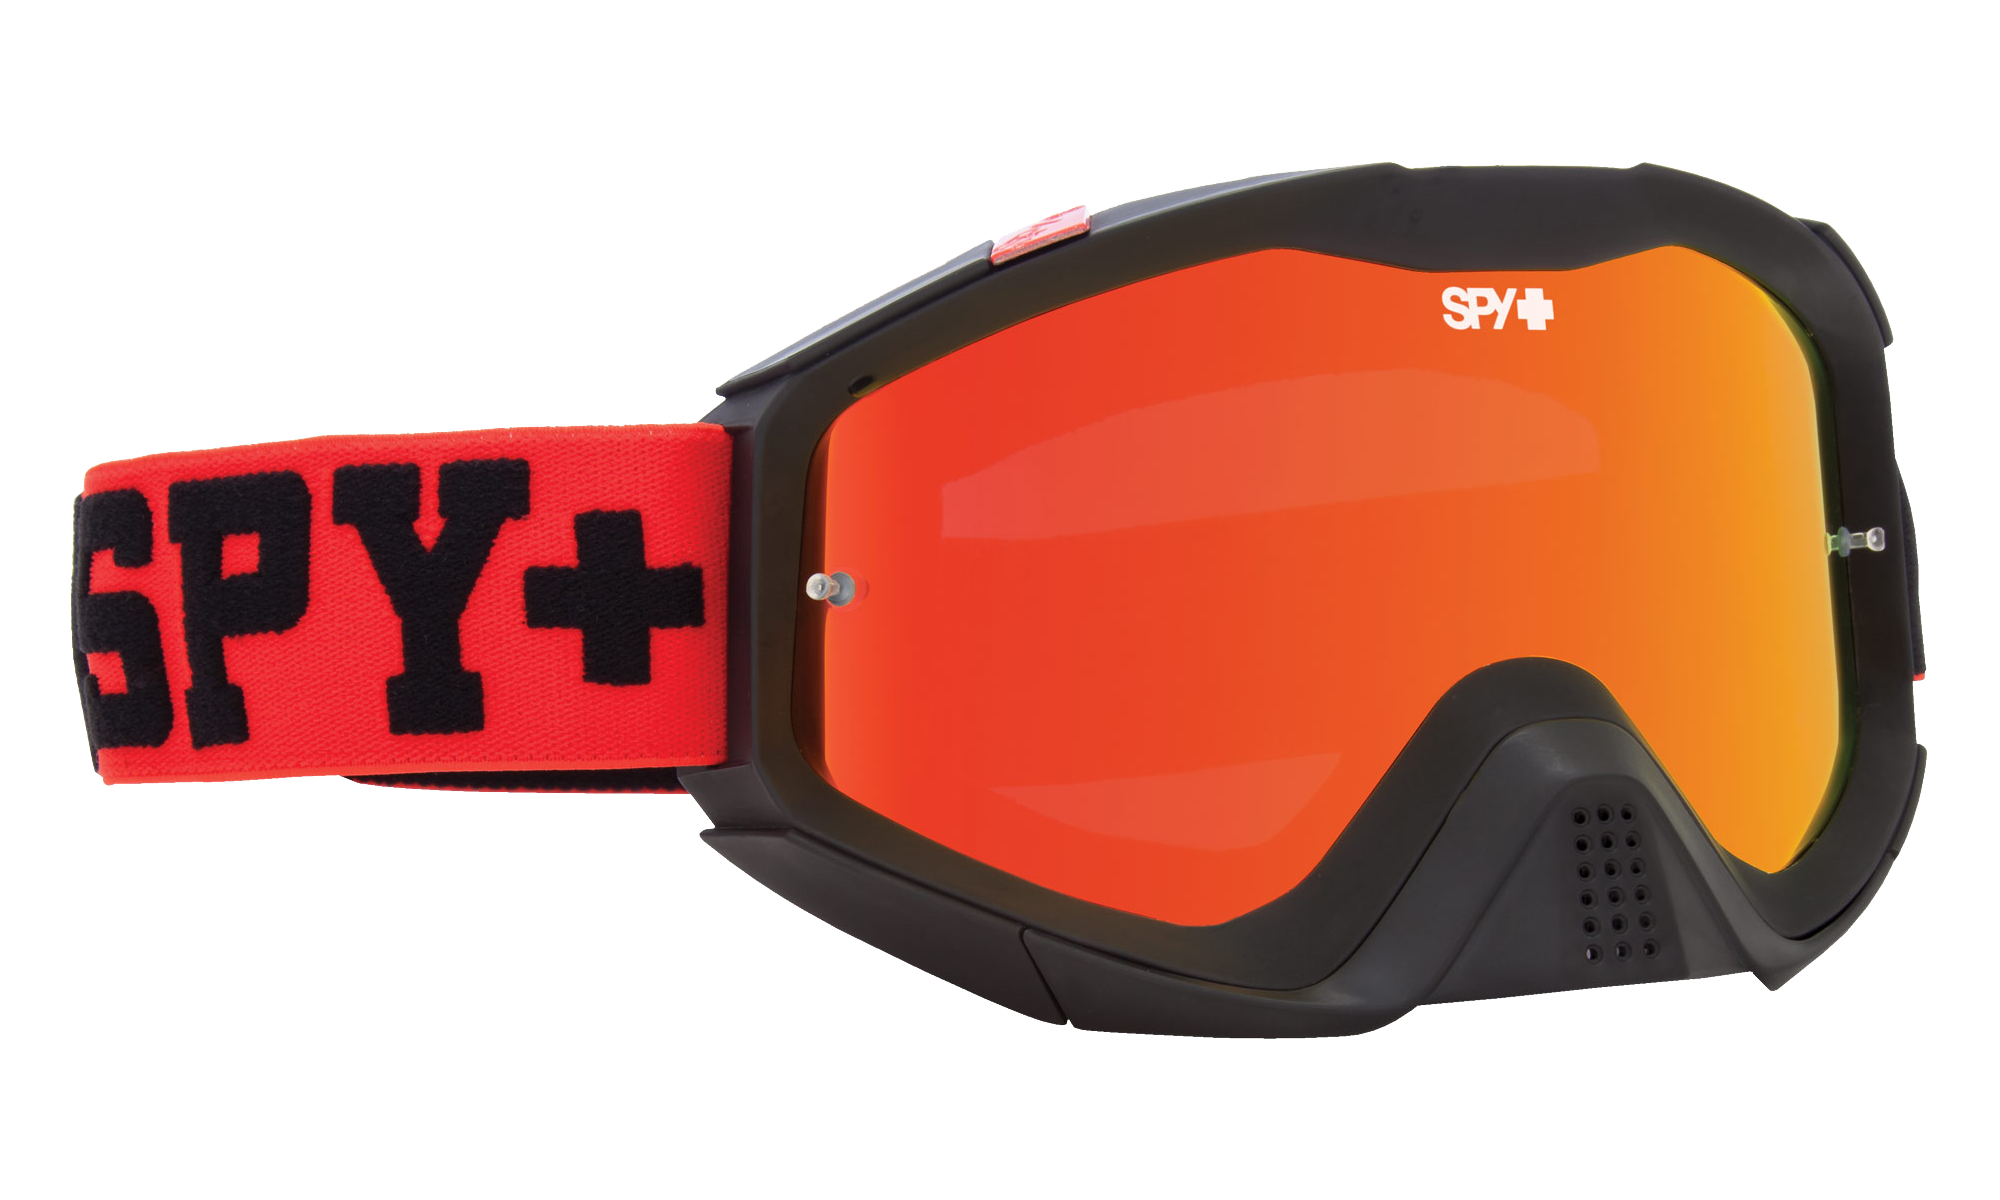 motocross goggles  Motocross Goggles and Dirt Bike Goggles and Lenses